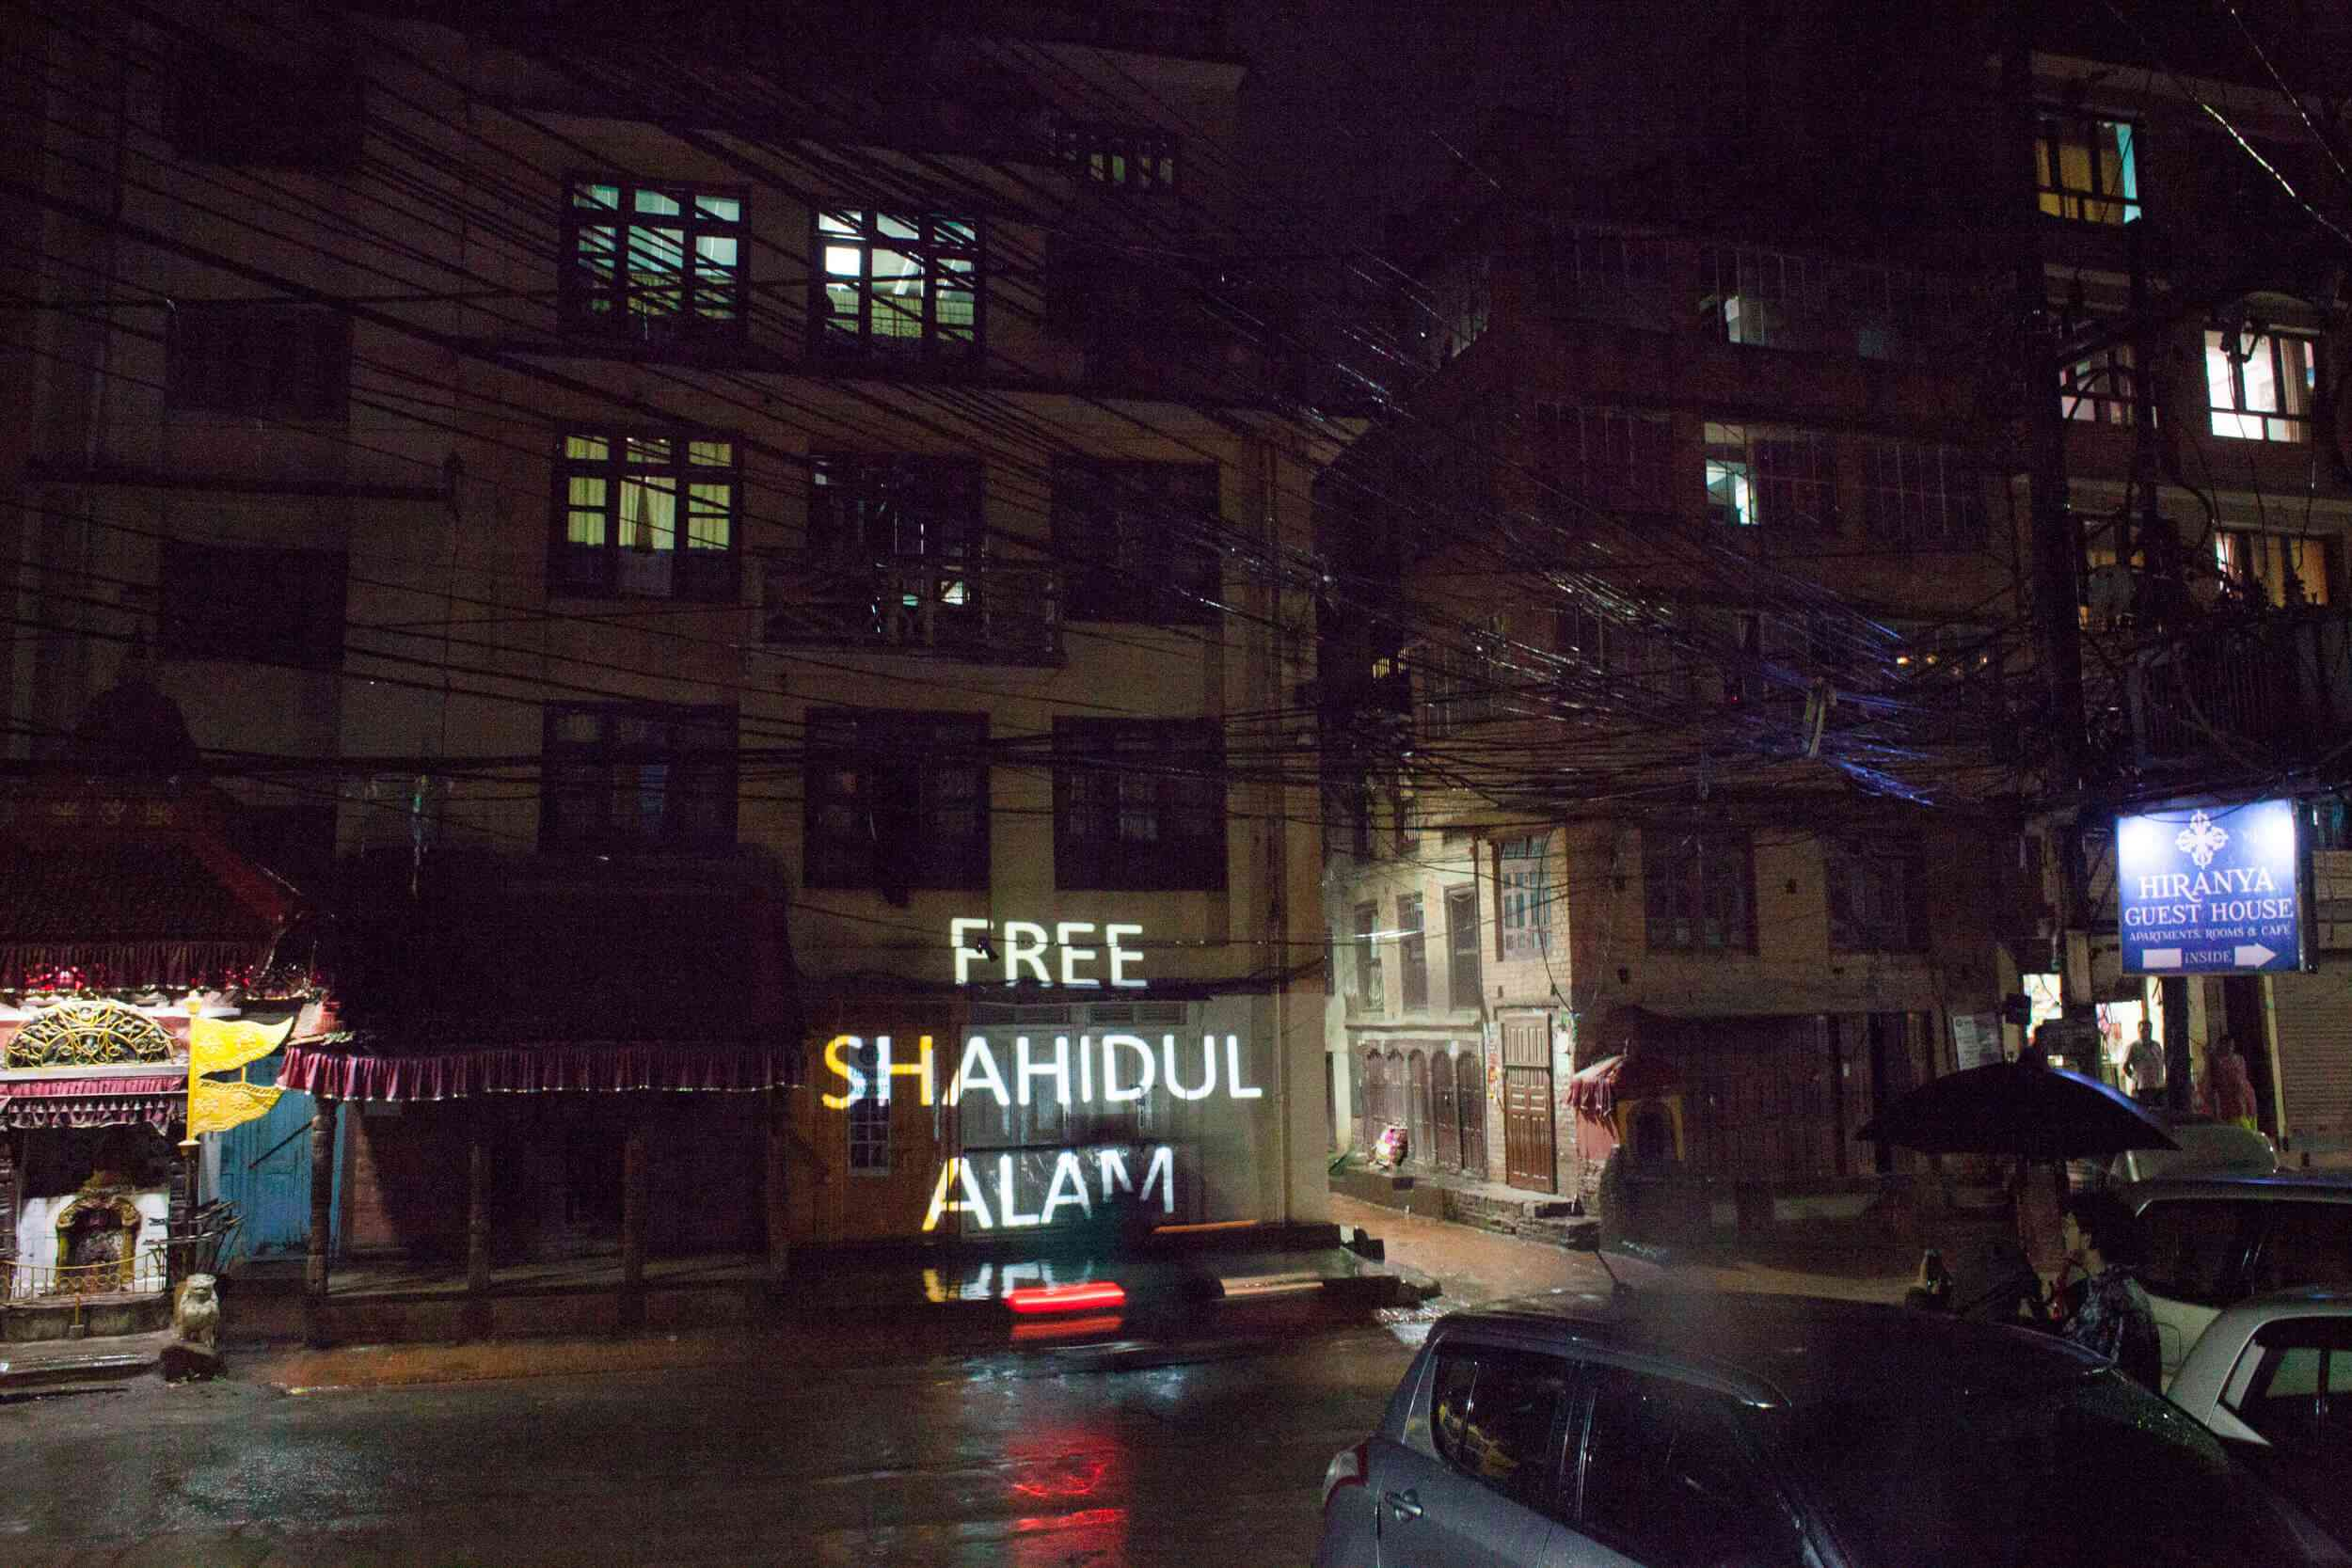 A 'Free Shahidul Alam' projection lights up a Kathmandu street at night during Sheikh Hasina's visit in August. (Credit: Photo Kathmandu)